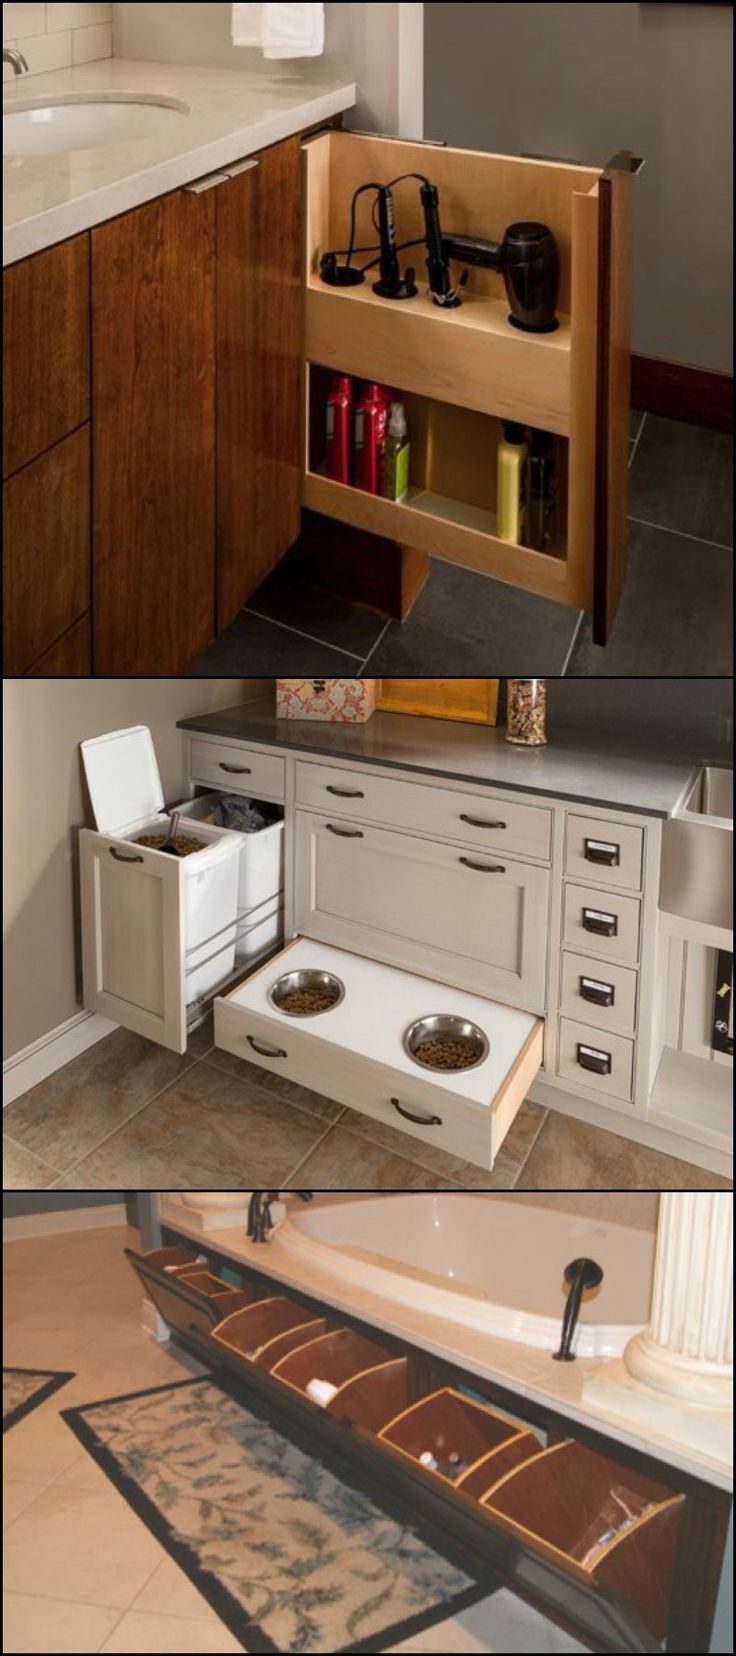 """nice cool """"A place for everything and everything in its place!"""" Have you ev... by http://www.top99-homedecorpictures.us/home-improvement/cool-a-place-for-everything-and-everything-in-its-place-have-you-ev/"""